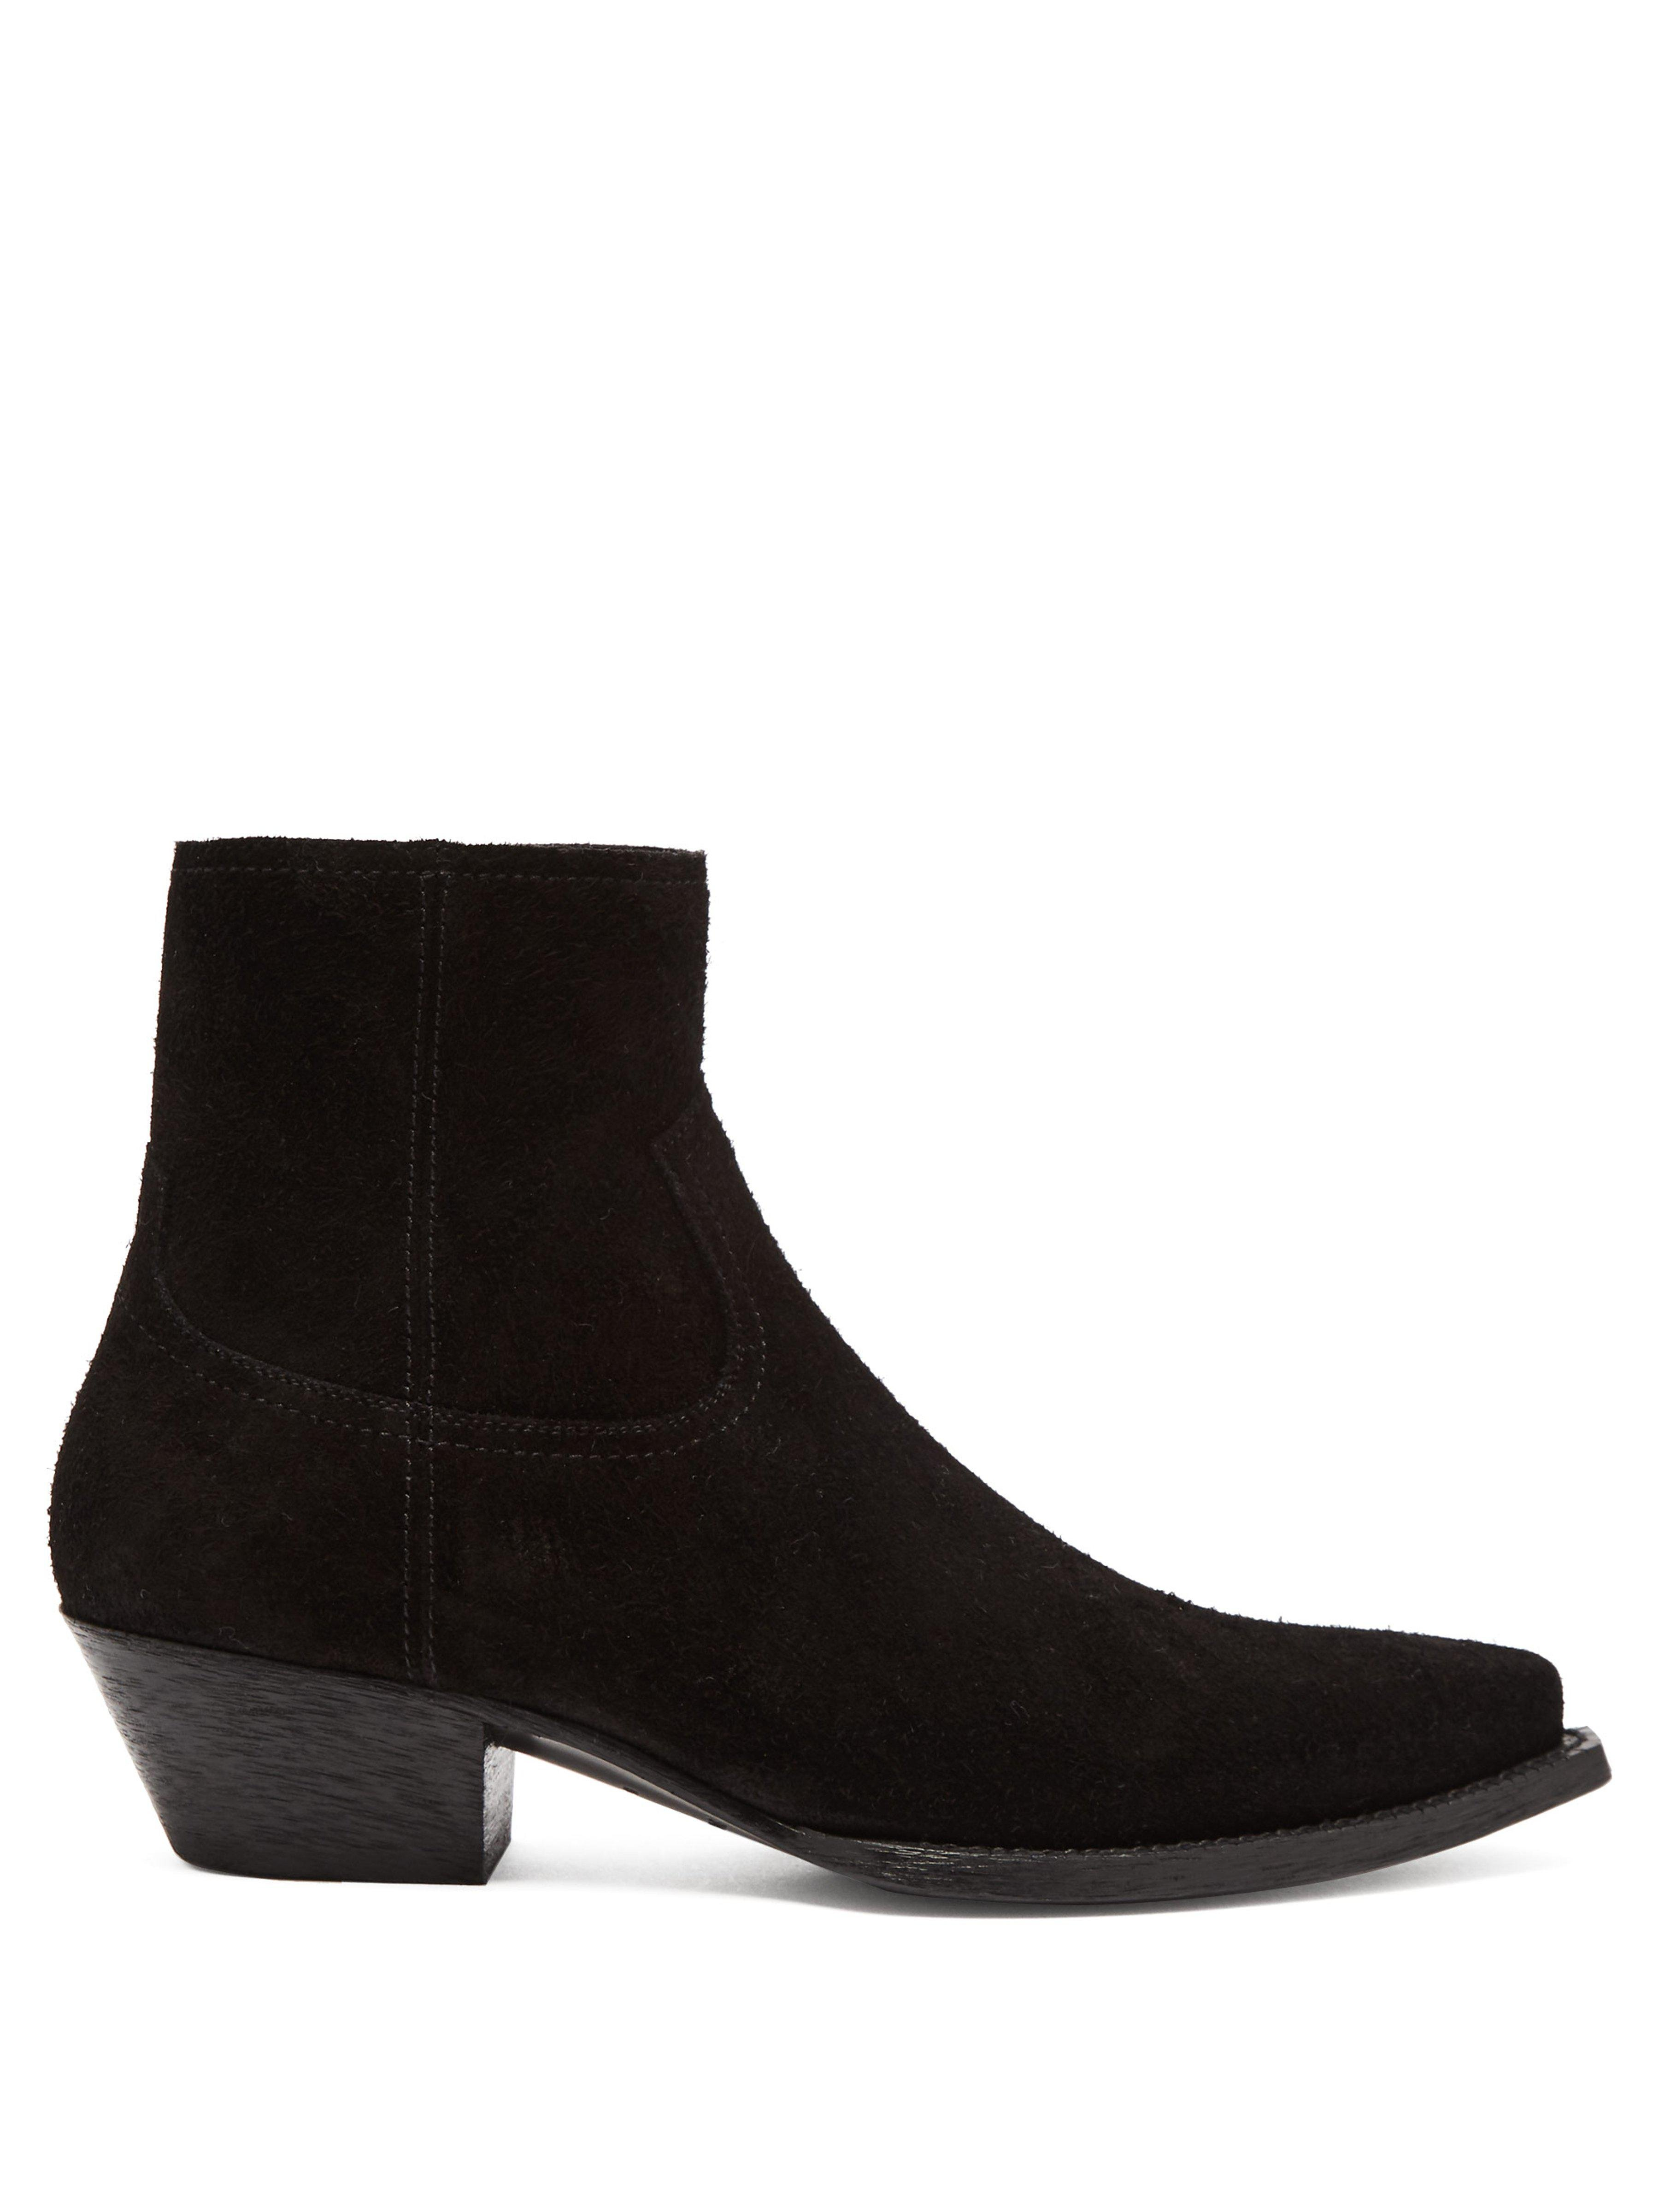 0f2a5a0ed39 Saint Laurent. Women's Black 40mm Lukas Reversed Leather Ankle Boots